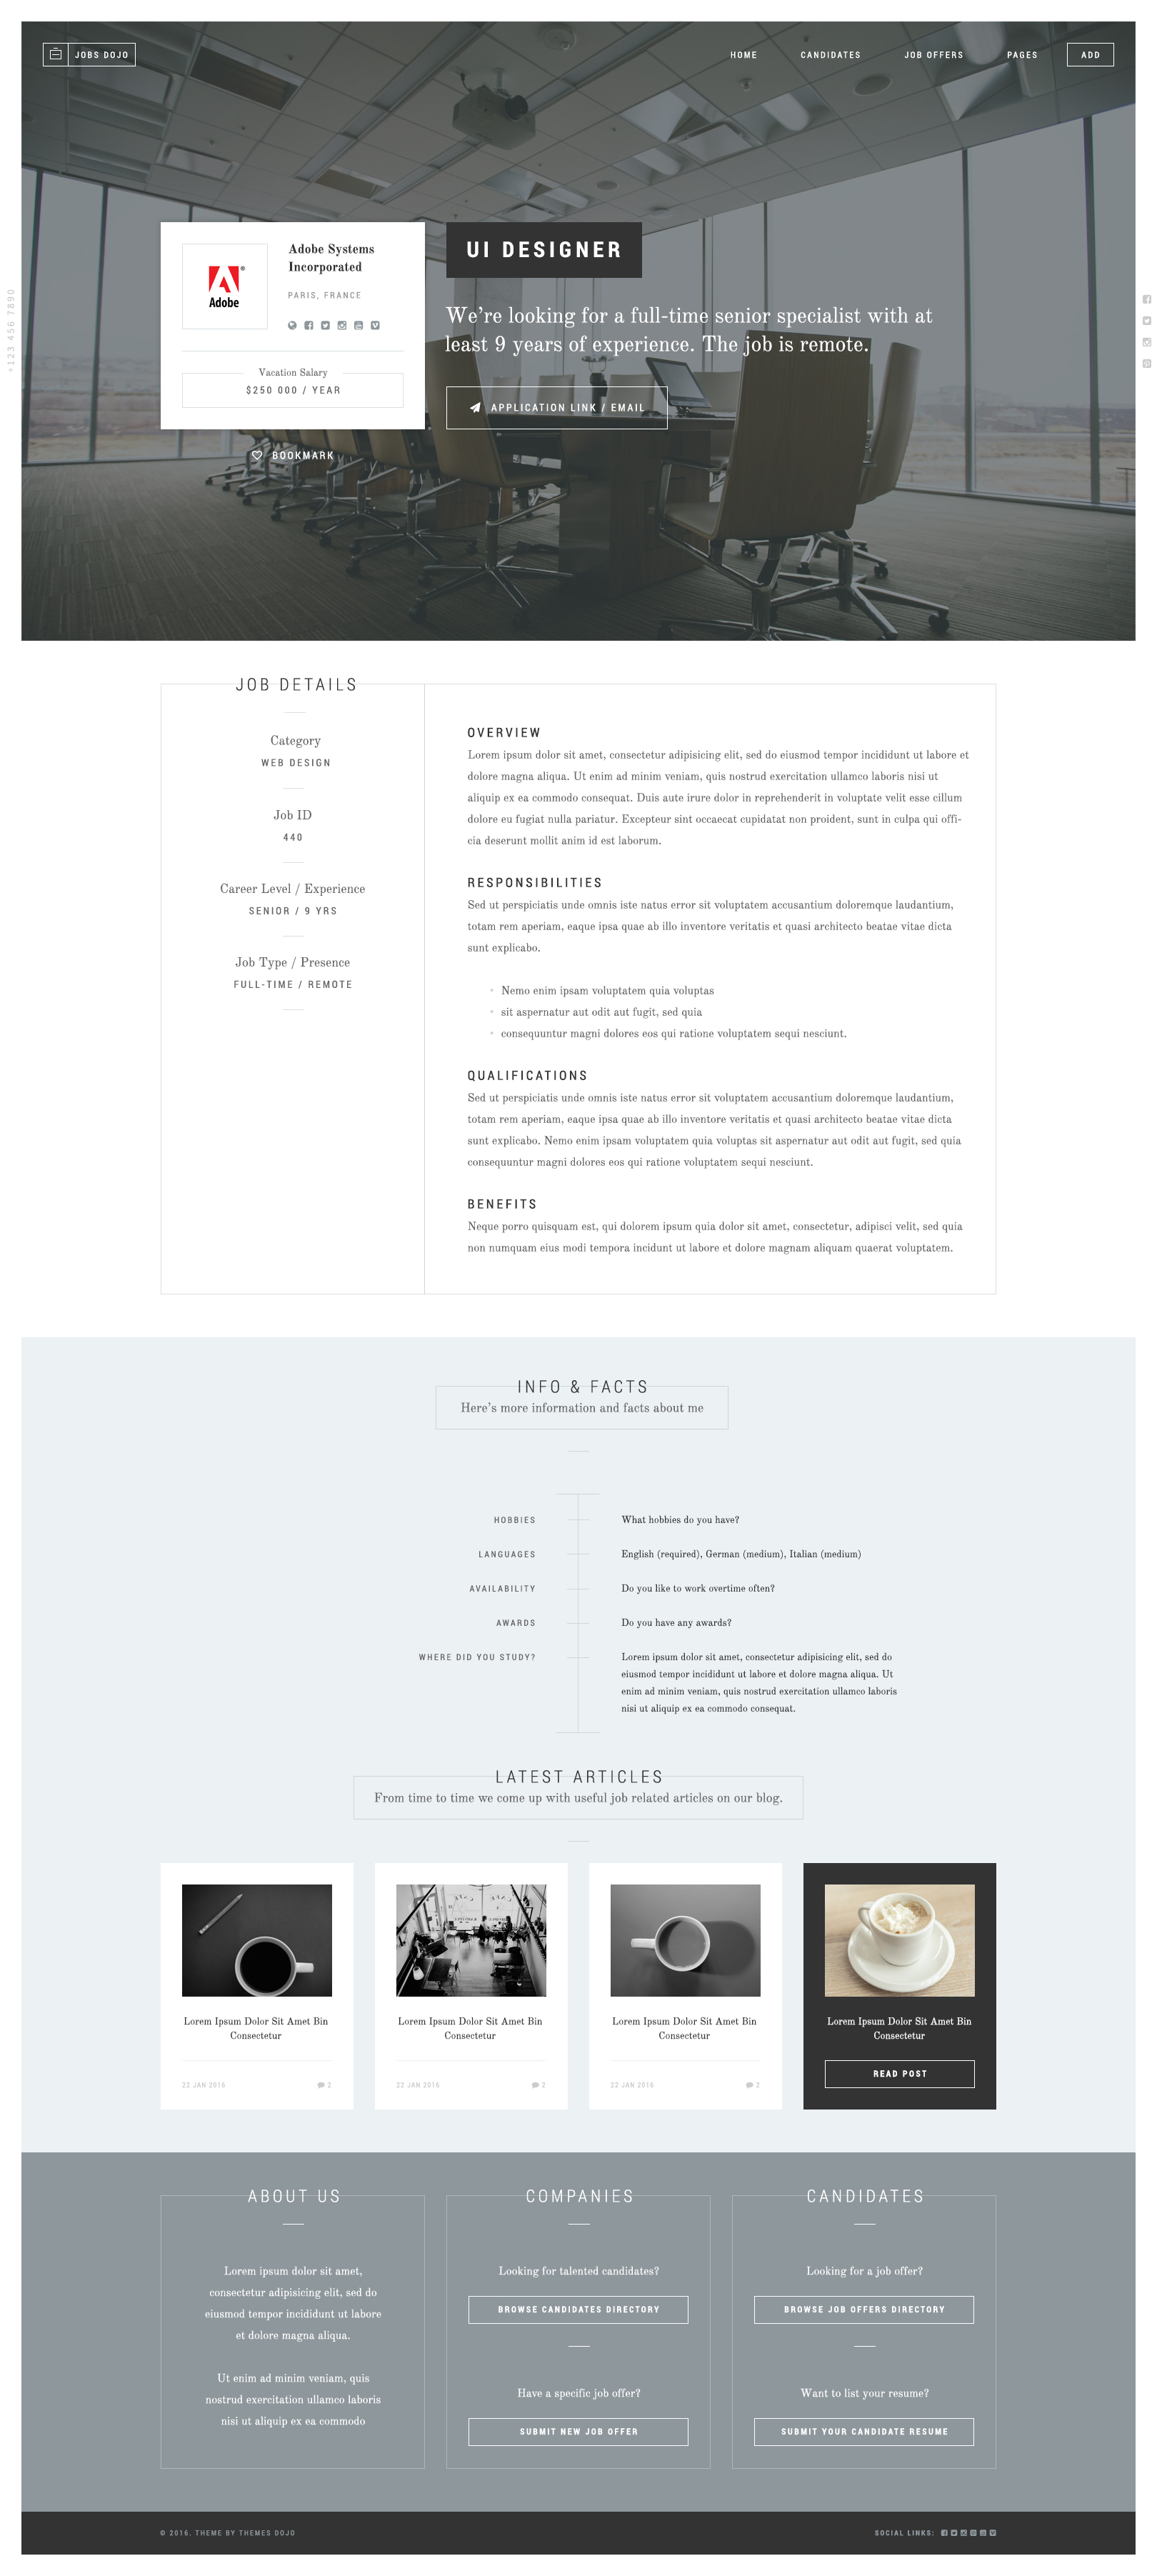 Network design resume samples documents The second